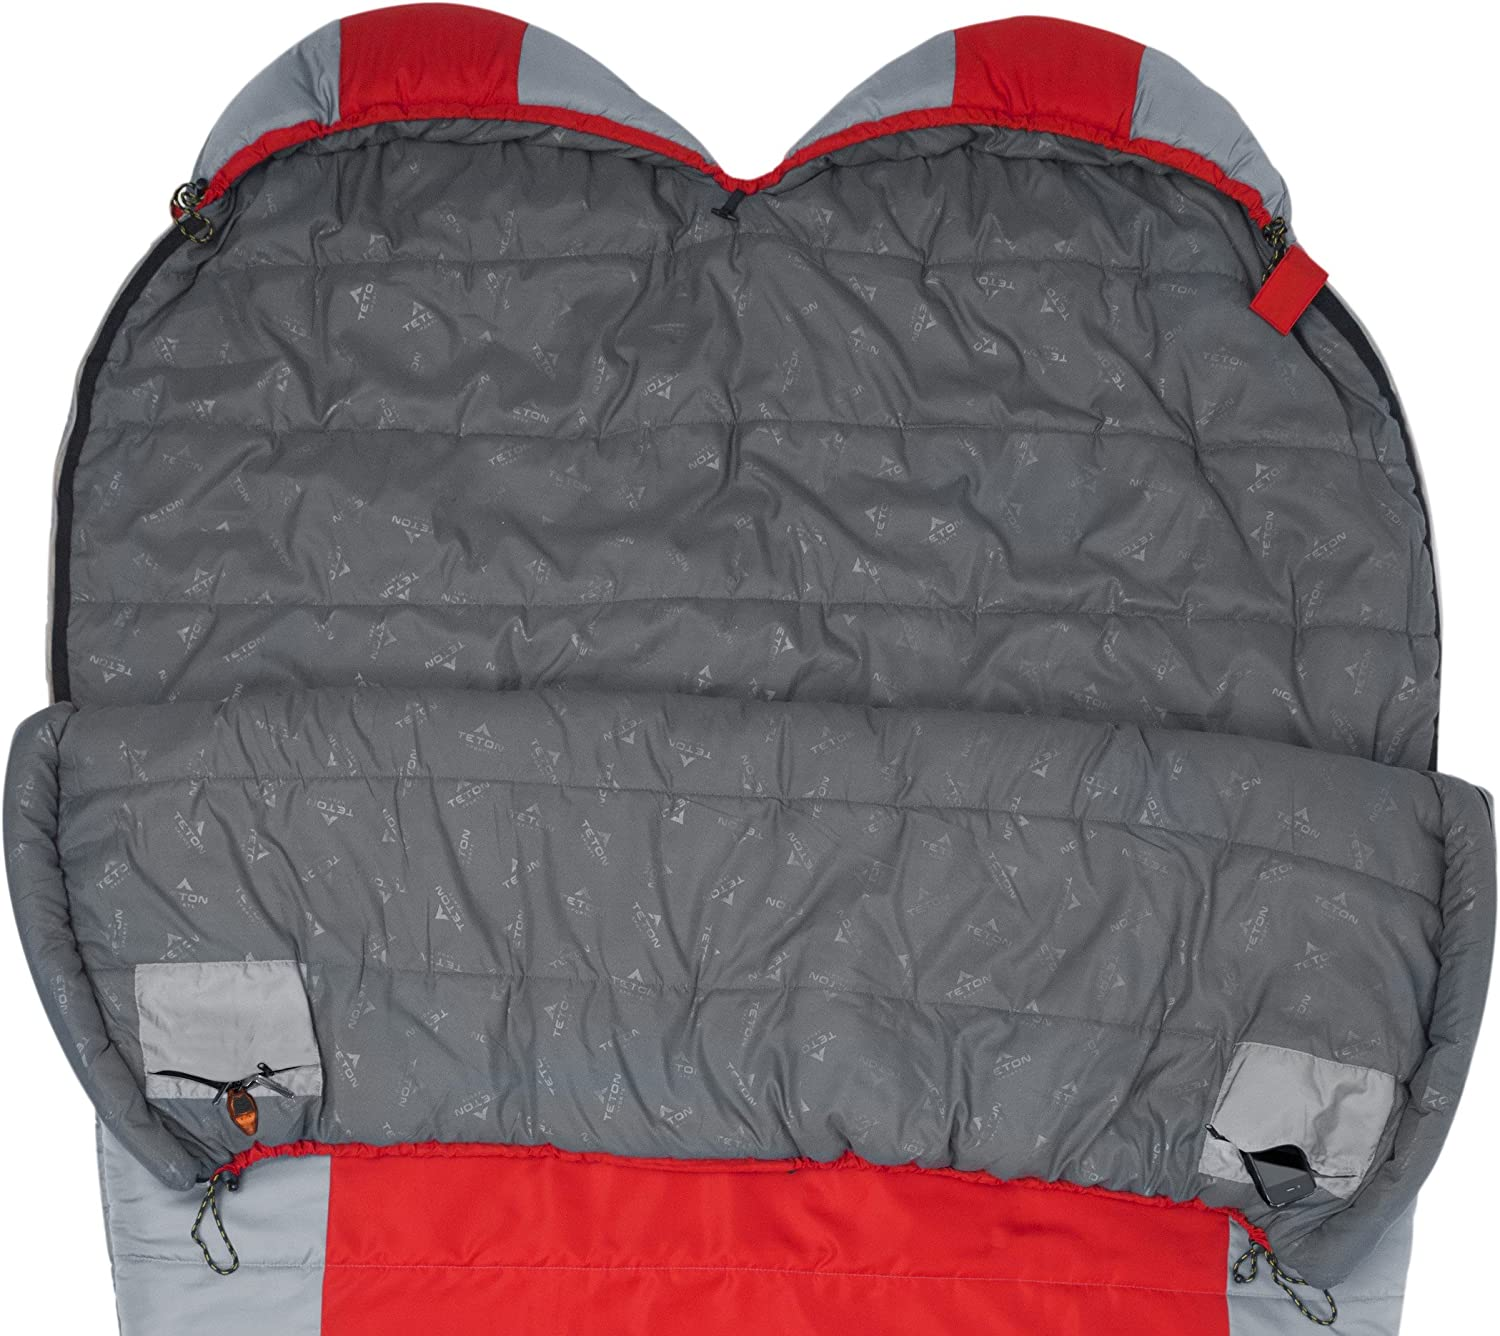 TETON Sports Tracker plus 5F Double Wide Bag